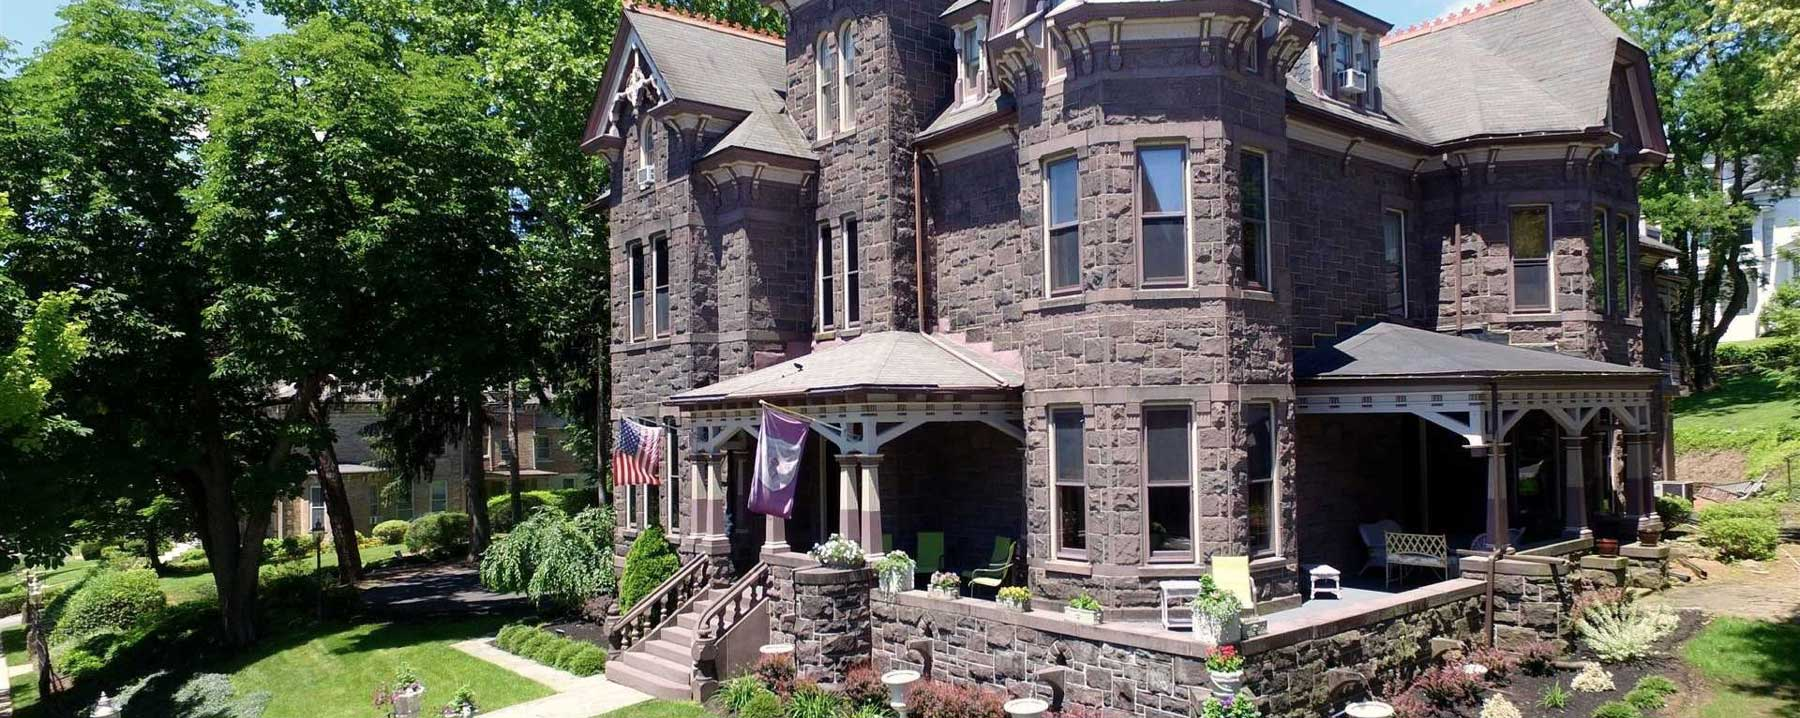 An old stone building at Reynolds Mansion Bed and Breakfast.